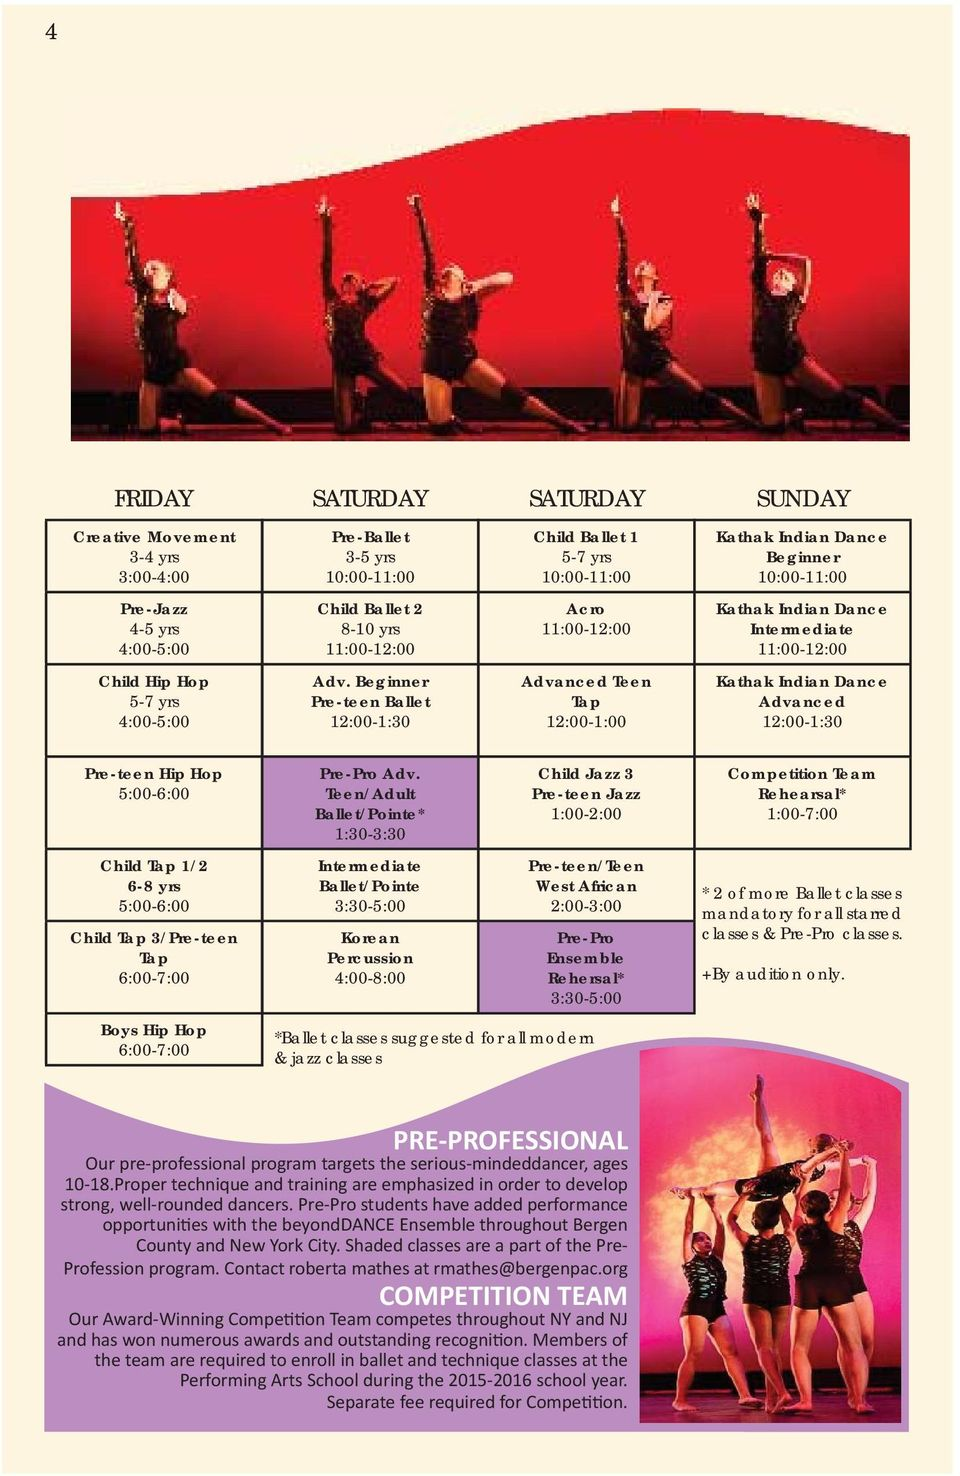 Beginner Pre-teen Ballet 12:00-1:30 Advanced Teen Tap 12:00-1:00 Kathak Indian Dance Advanced 12:00-1:30 Pre-teen Hip Hop 5:00-6:00 Child Tap 1/2 6-8 yrs 5:00-6:00 Child Tap 3/Pre-teen Tap 6:00-7:00